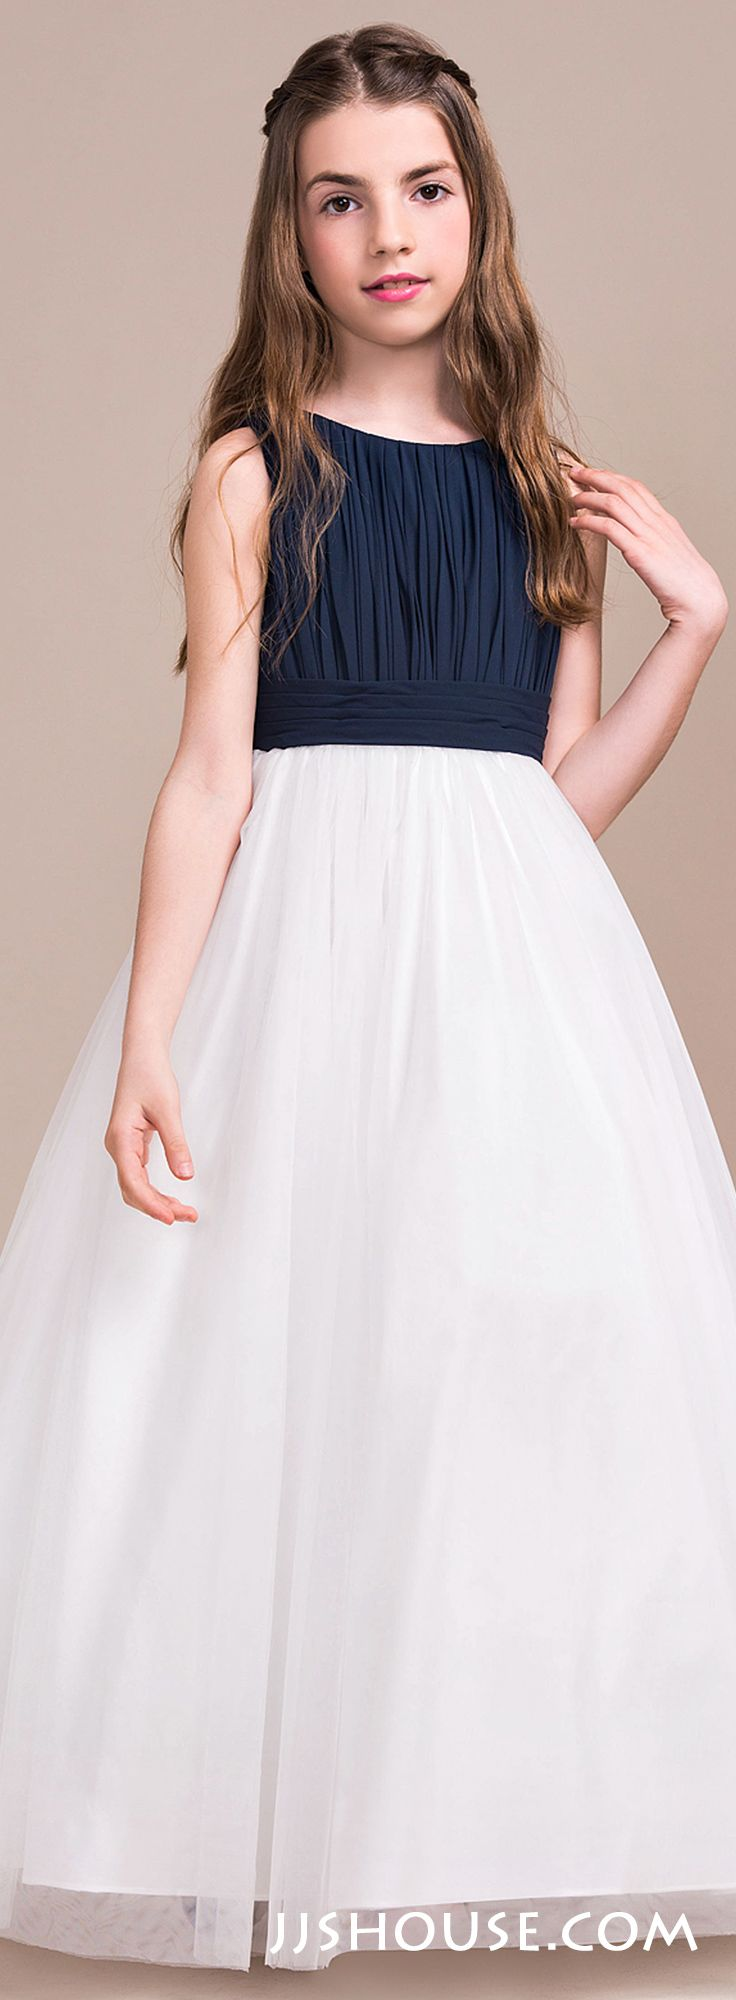 2996 best isabella regina images on pinterest girls dresses a nice choice for your junior bridesmaids jjshouse jr bridesmaid dressesjunior bridesmaidskid ombrellifo Images